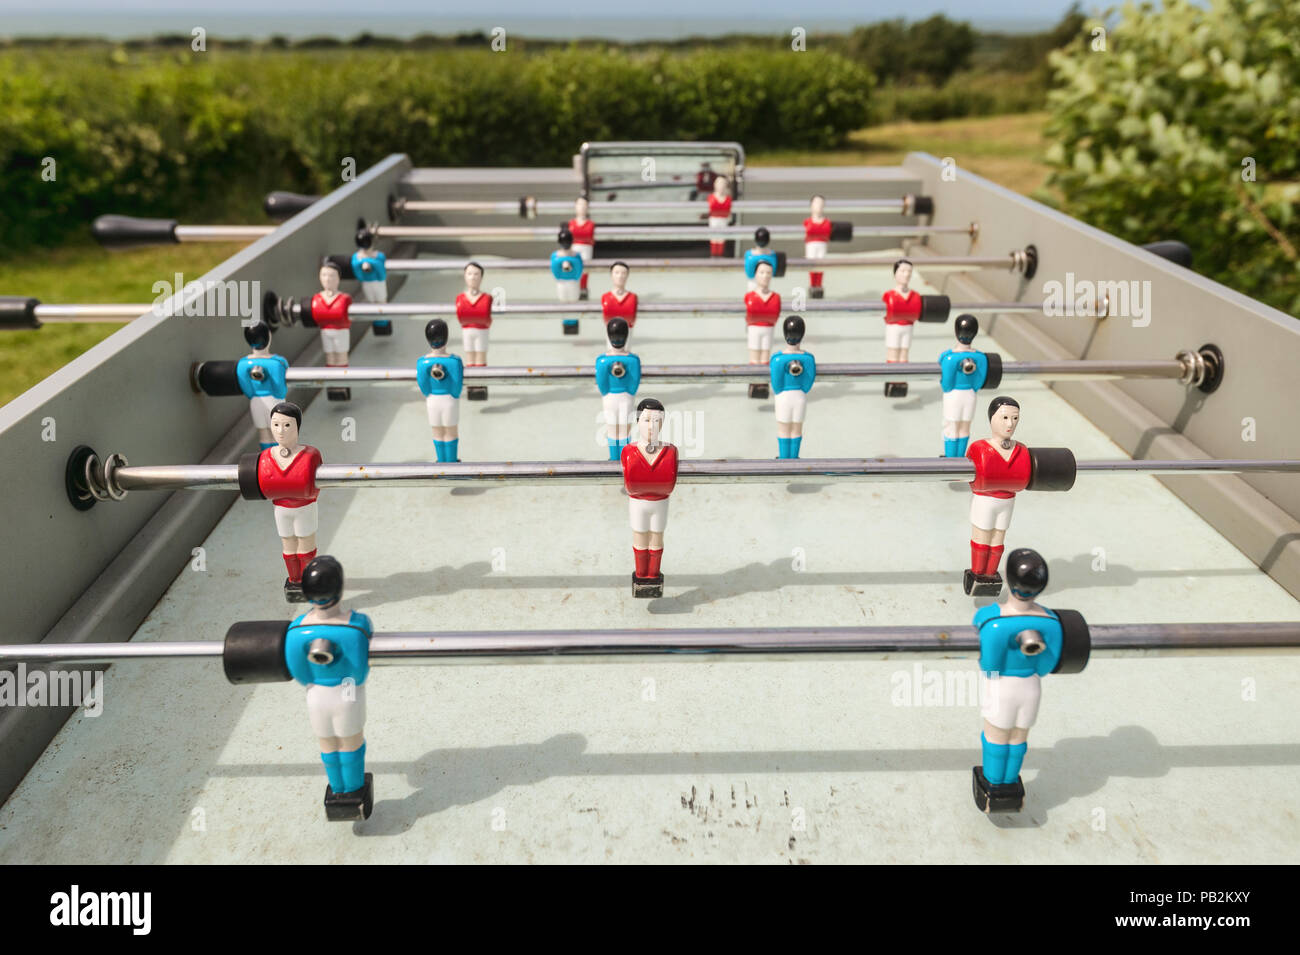 Outdoor table football, baby foot or baby soccer - Stock Image